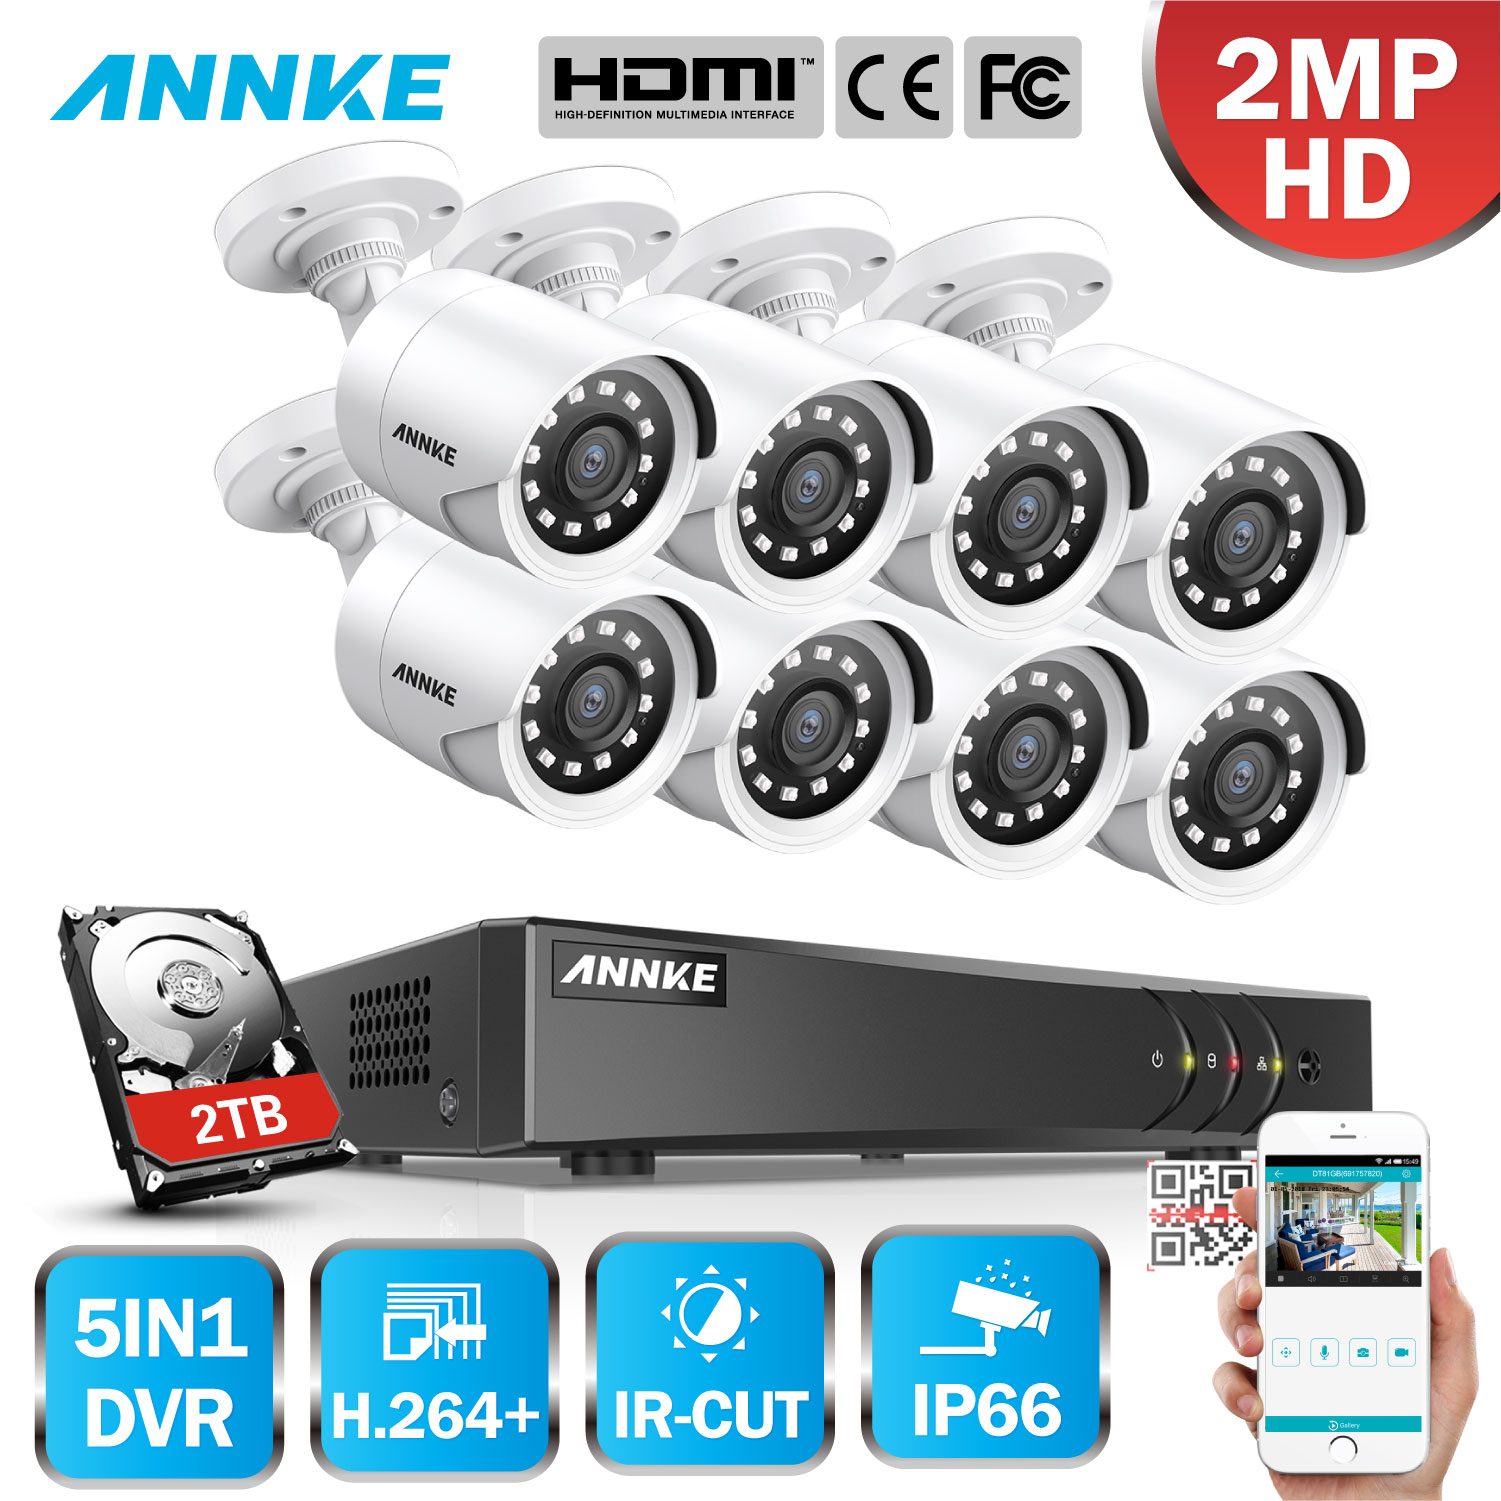 ANNKE 1080P Lite H.264+ 8CH CCTV Camera DVR System 8pcs IP66 Waterproof 2.0MP Bullet Cameras Home Video Security CCTV Kit